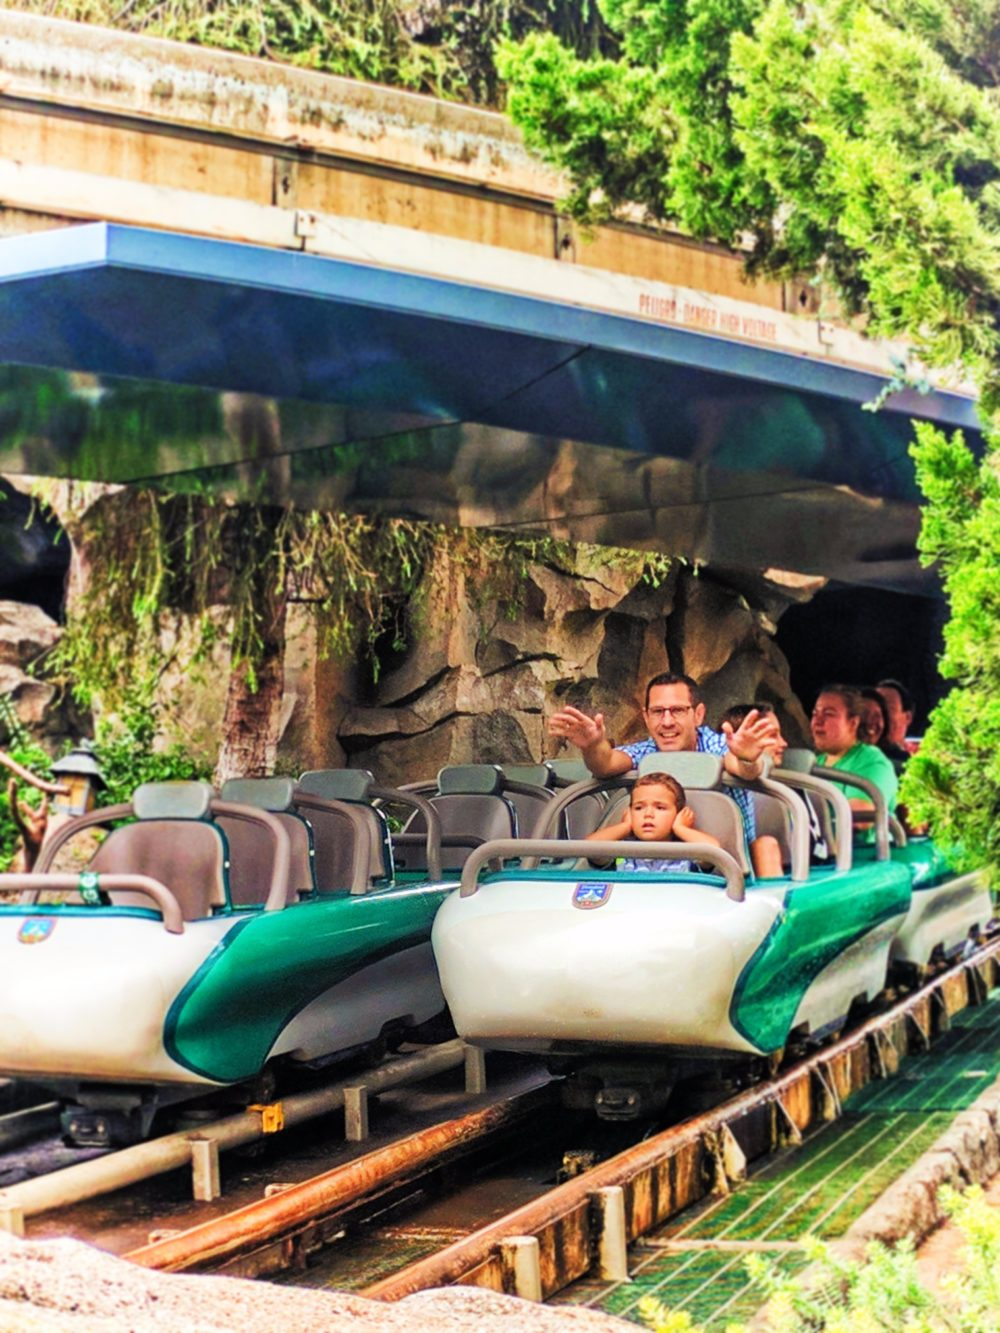 Taylor Family At Matterhorn Bobsleds In Fantasyland